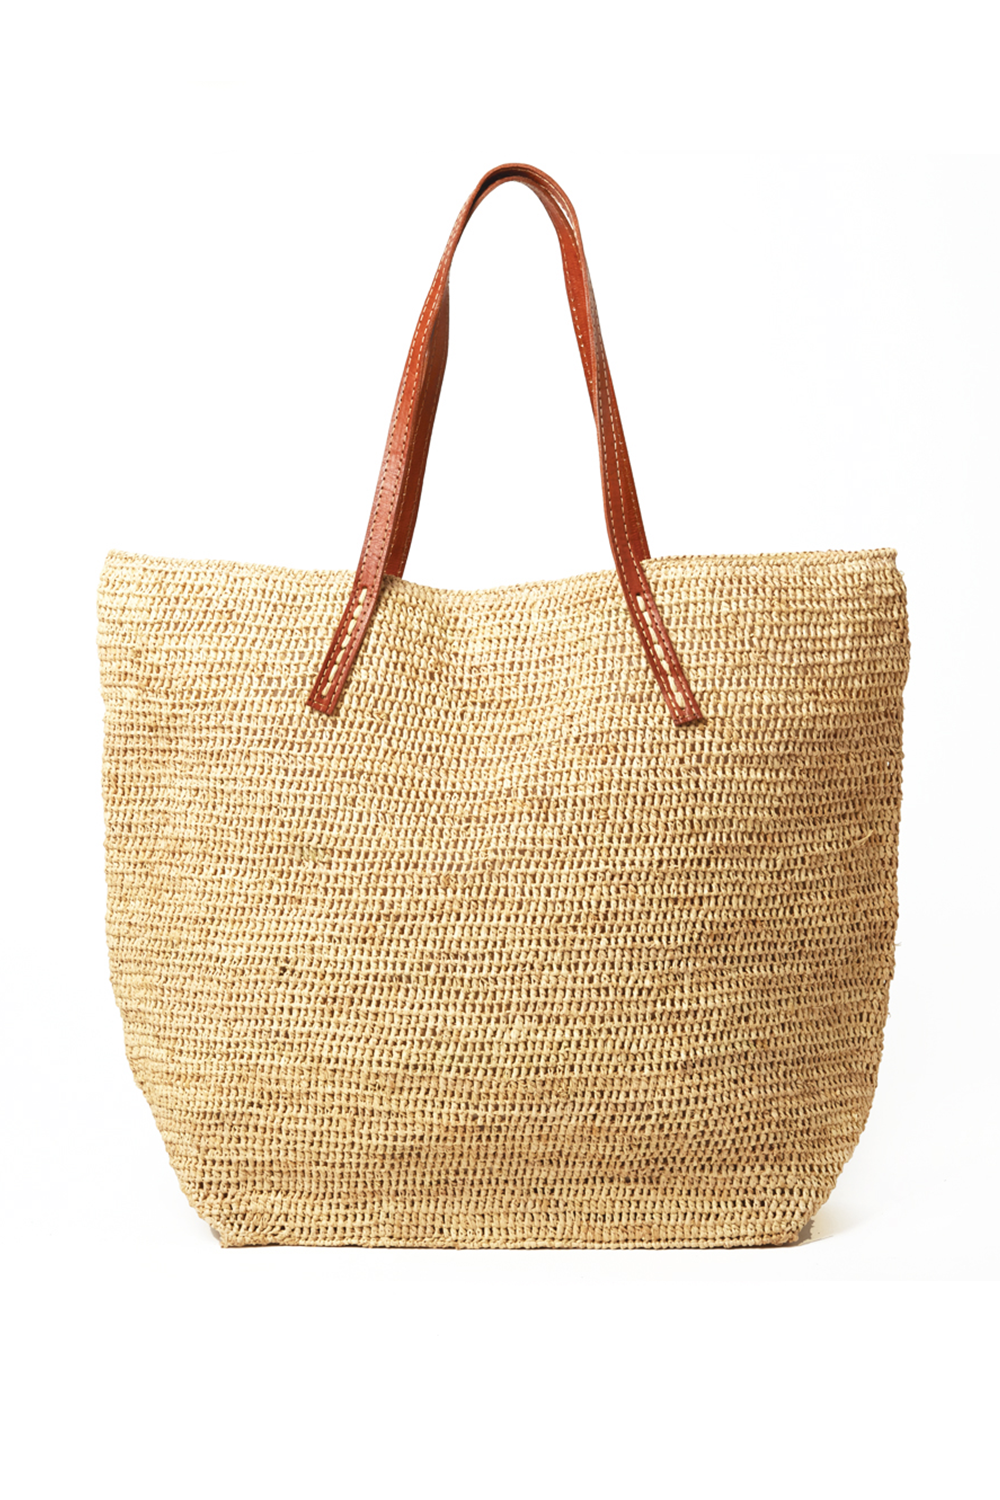 Portland Tote in Natural